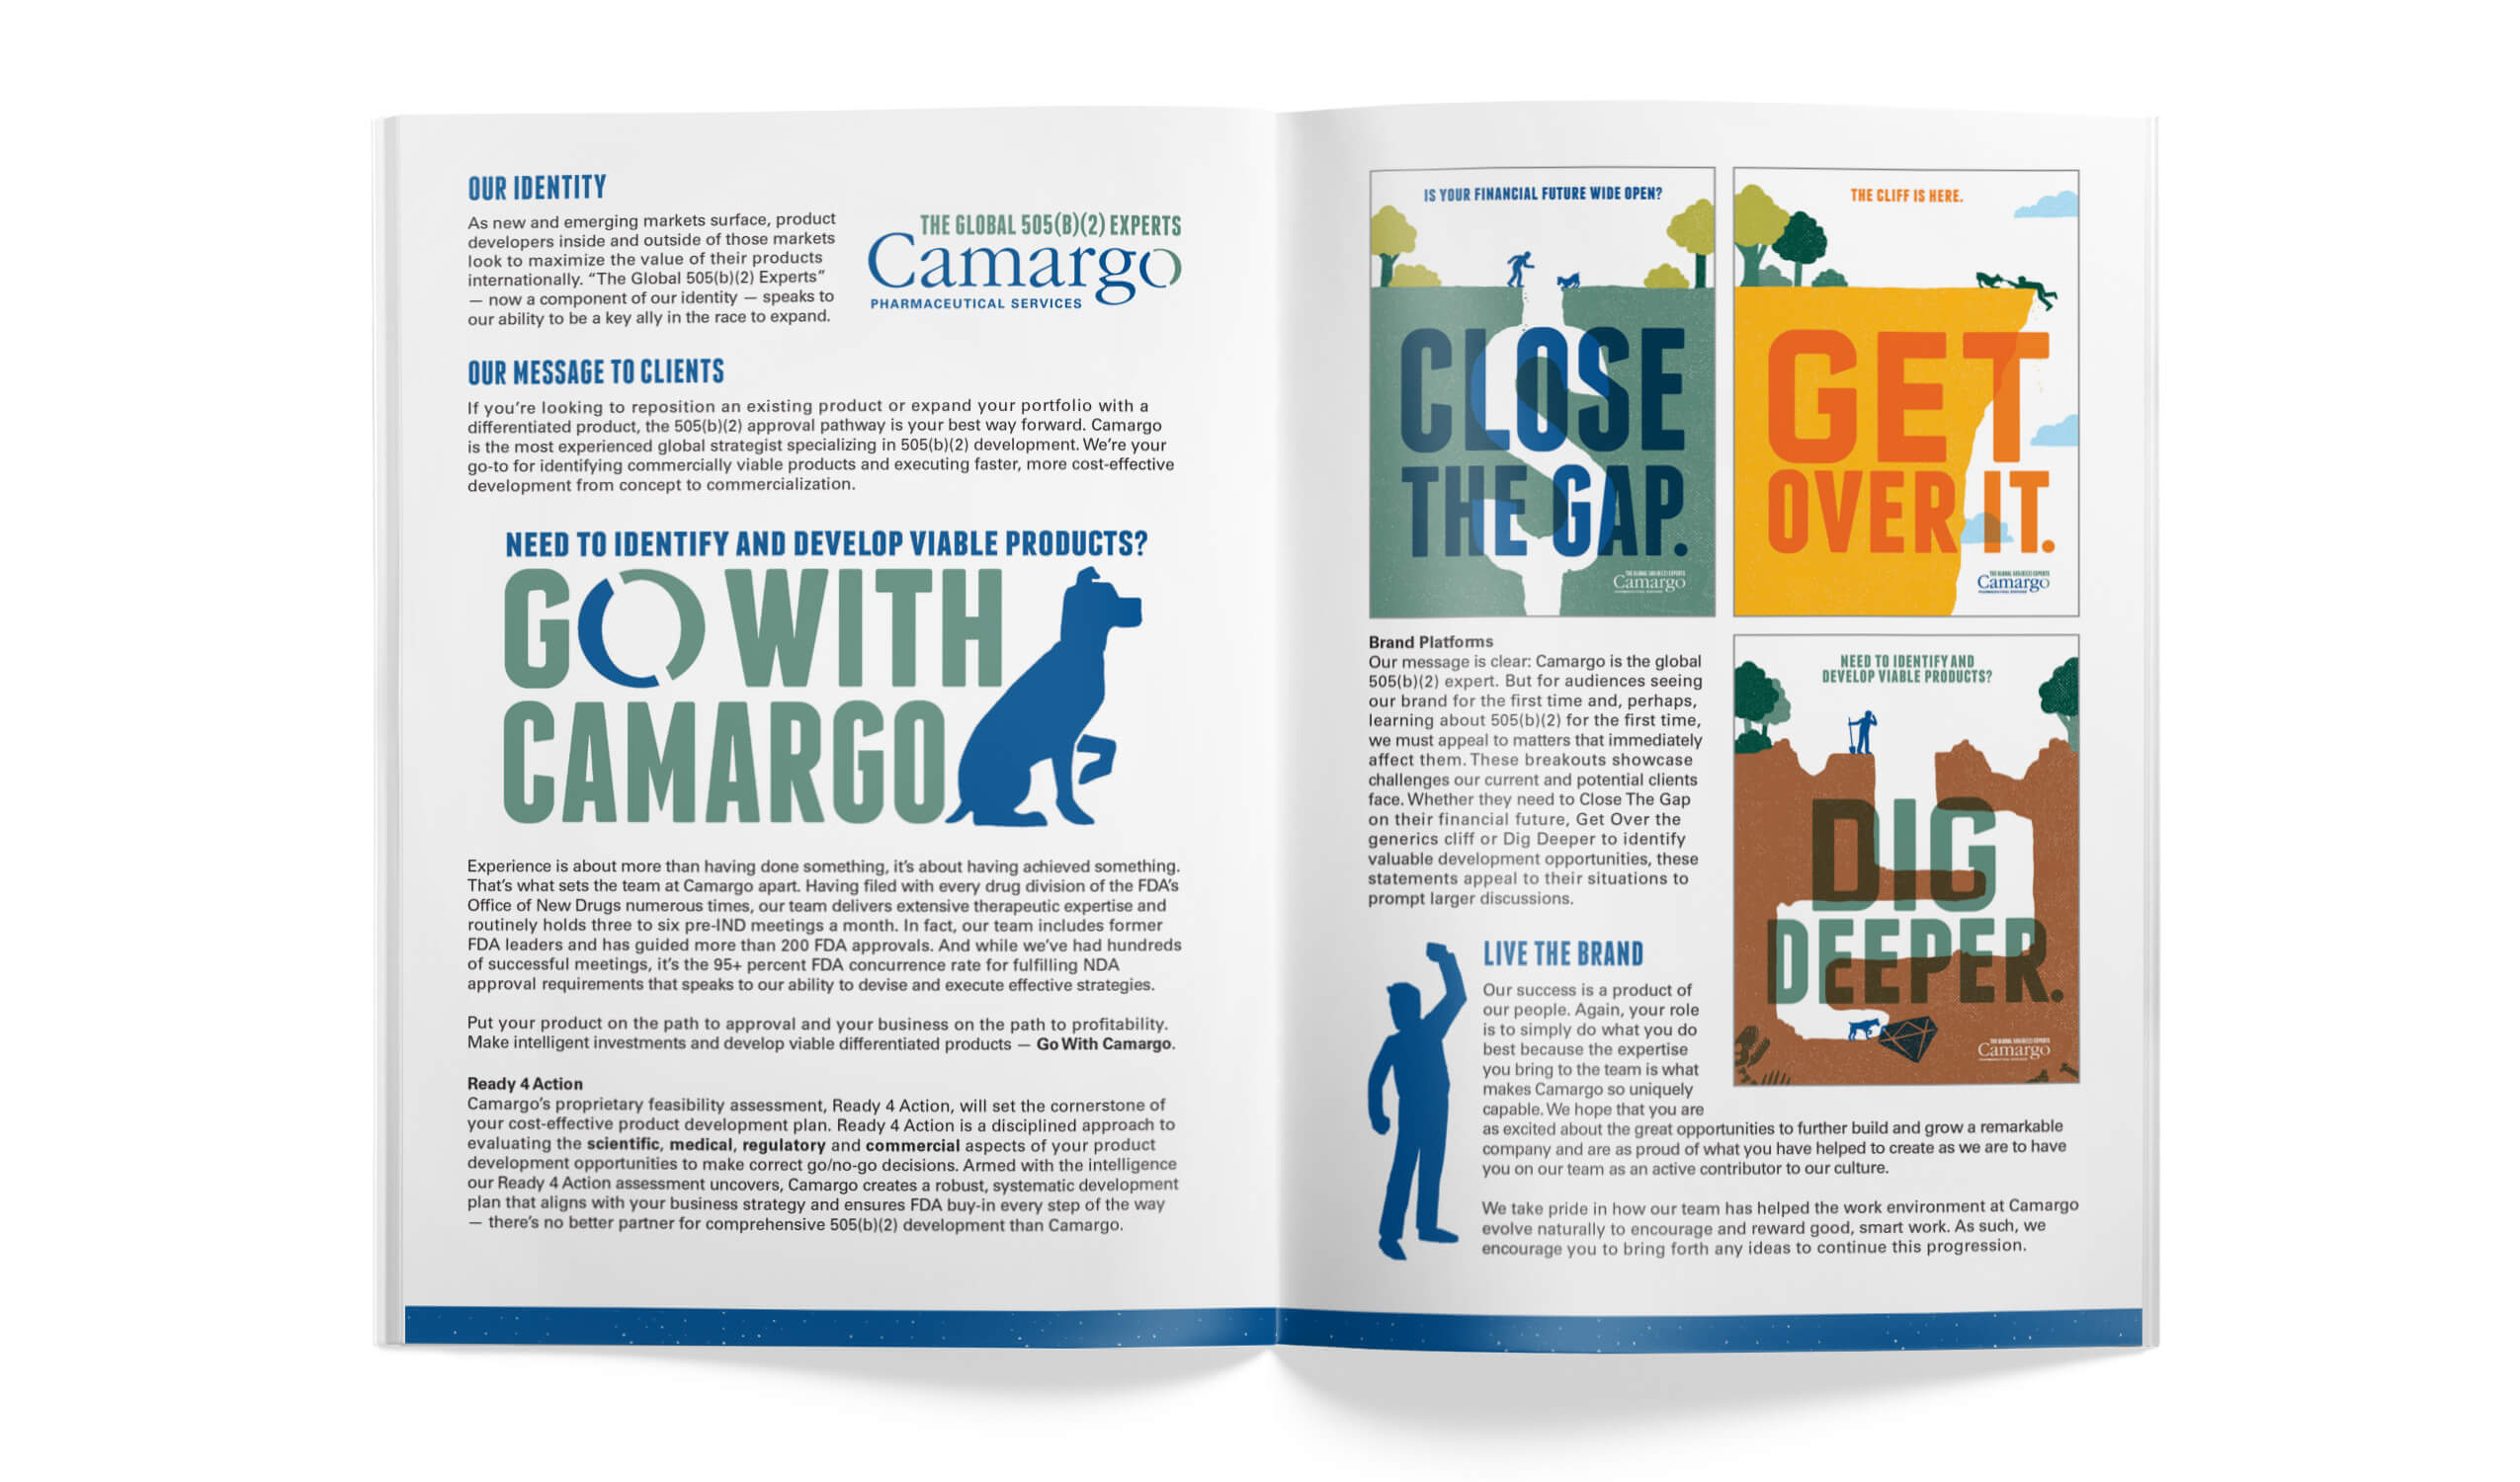 camargo internal brand book